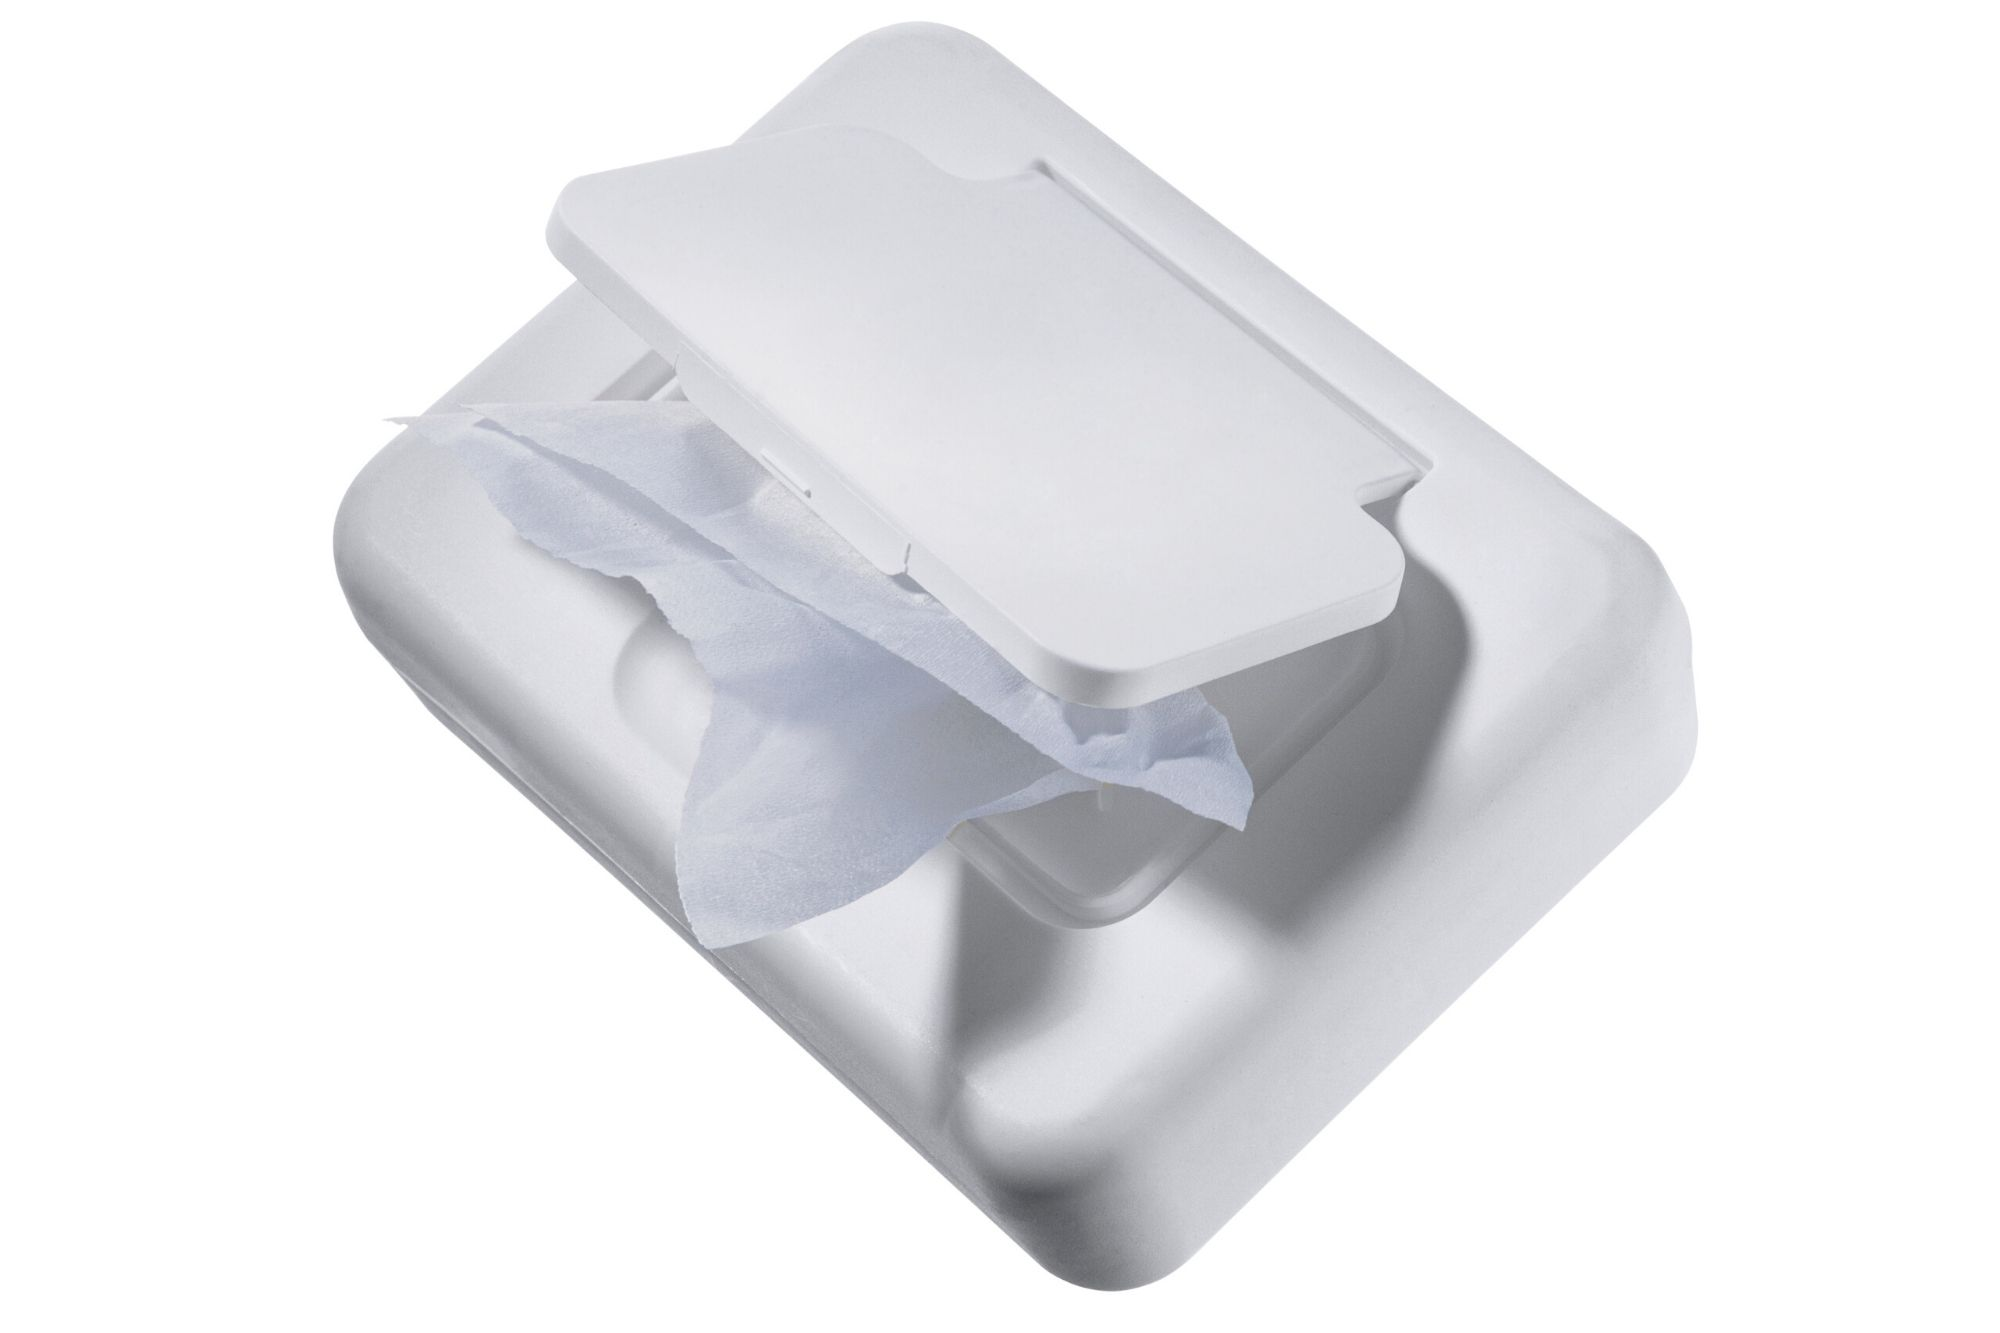 White container of wipes